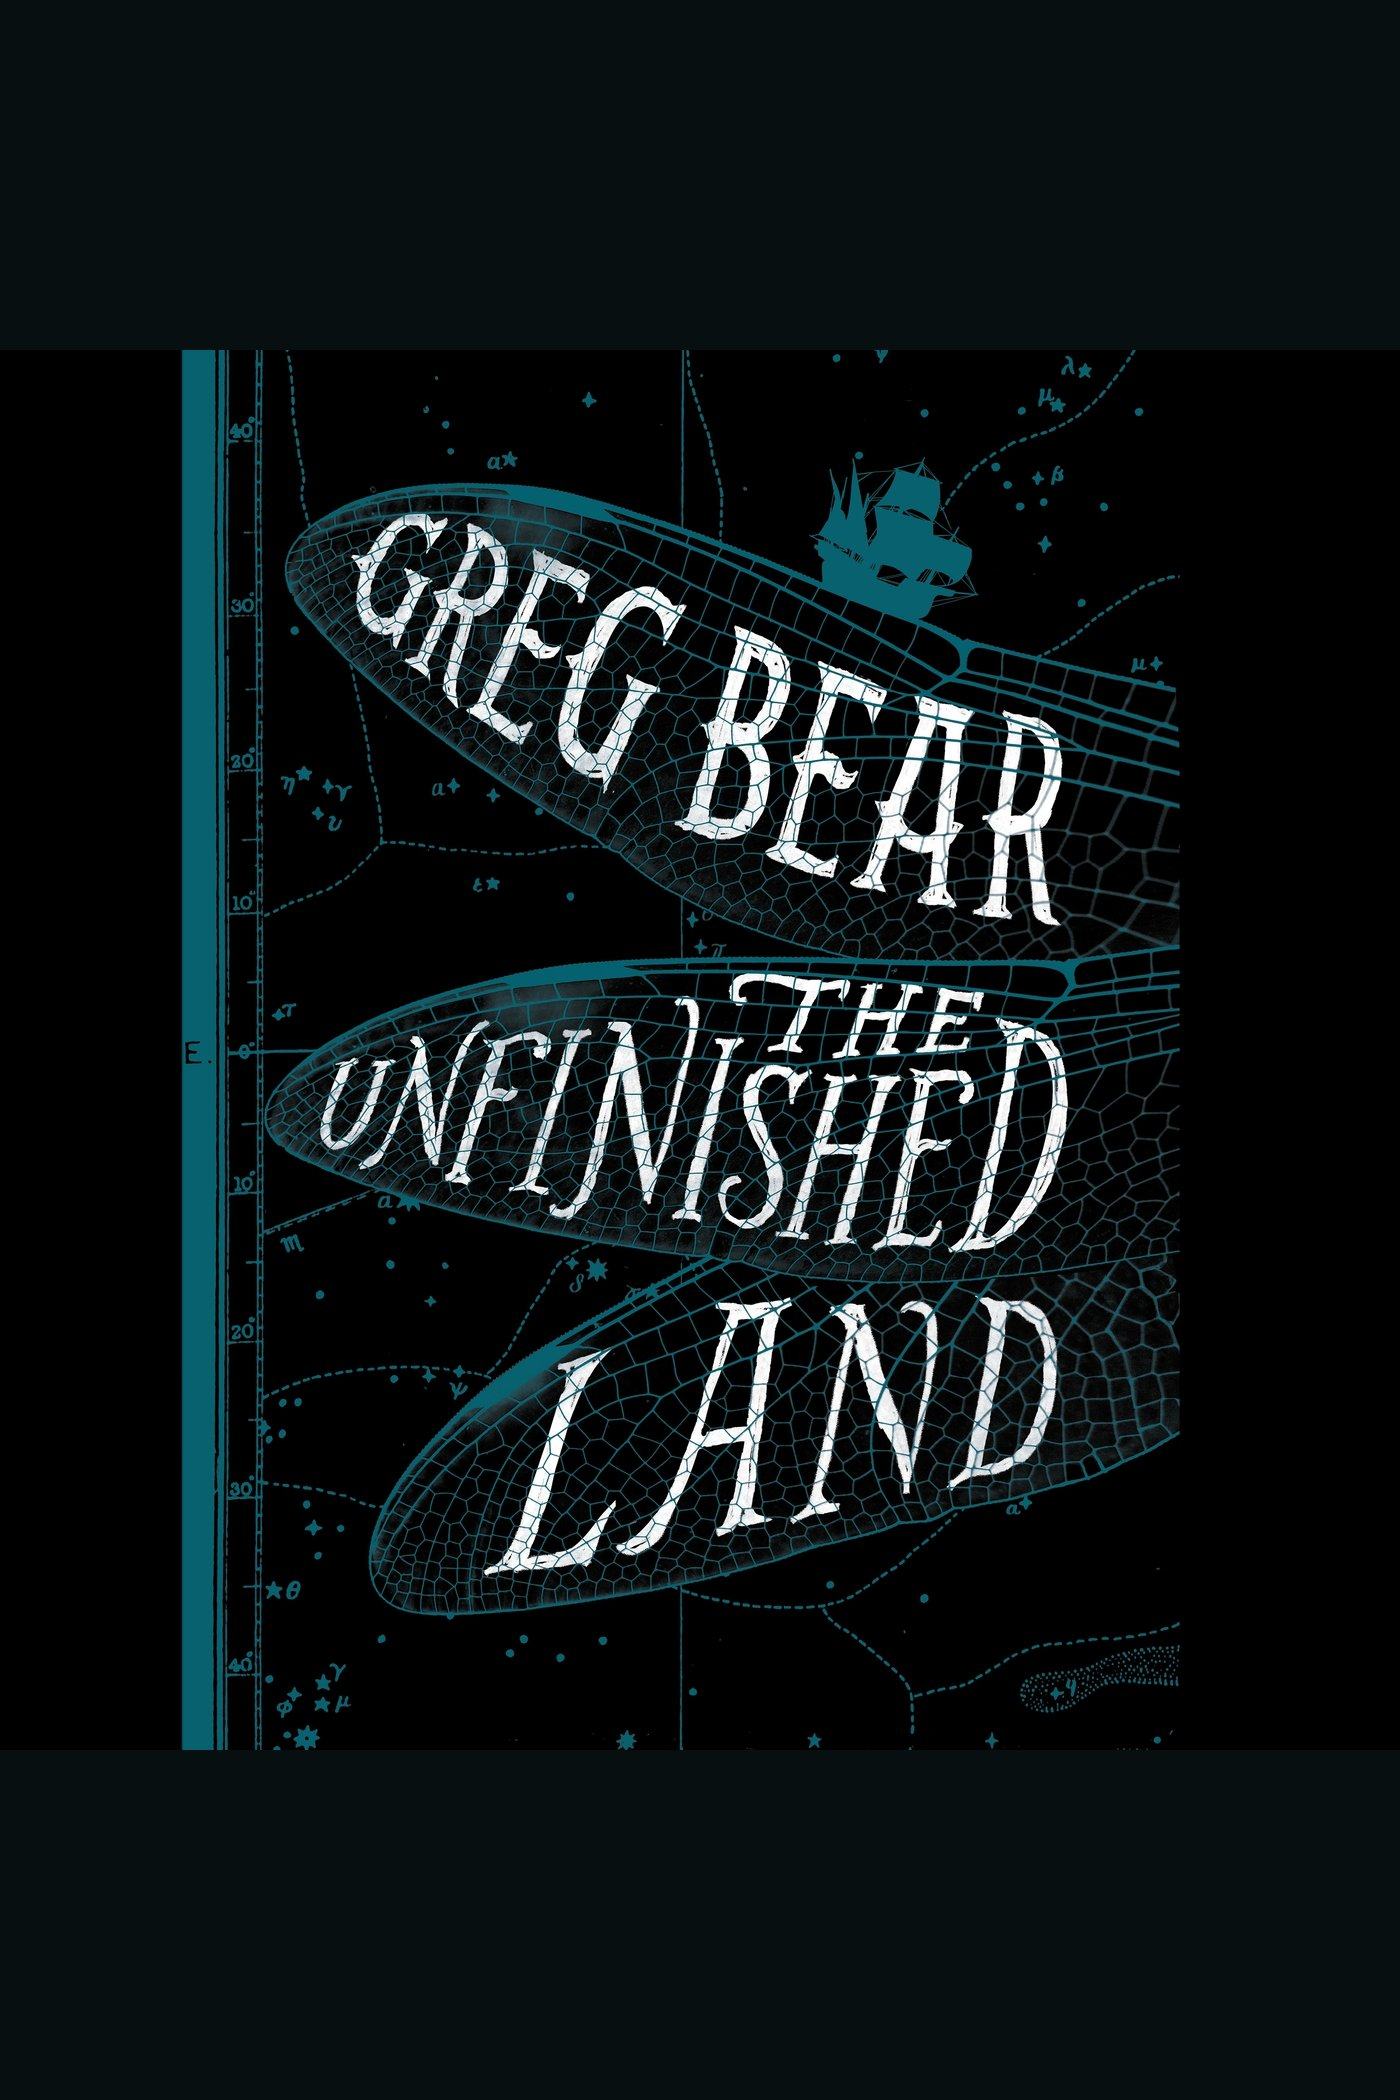 Unfinished Land, The